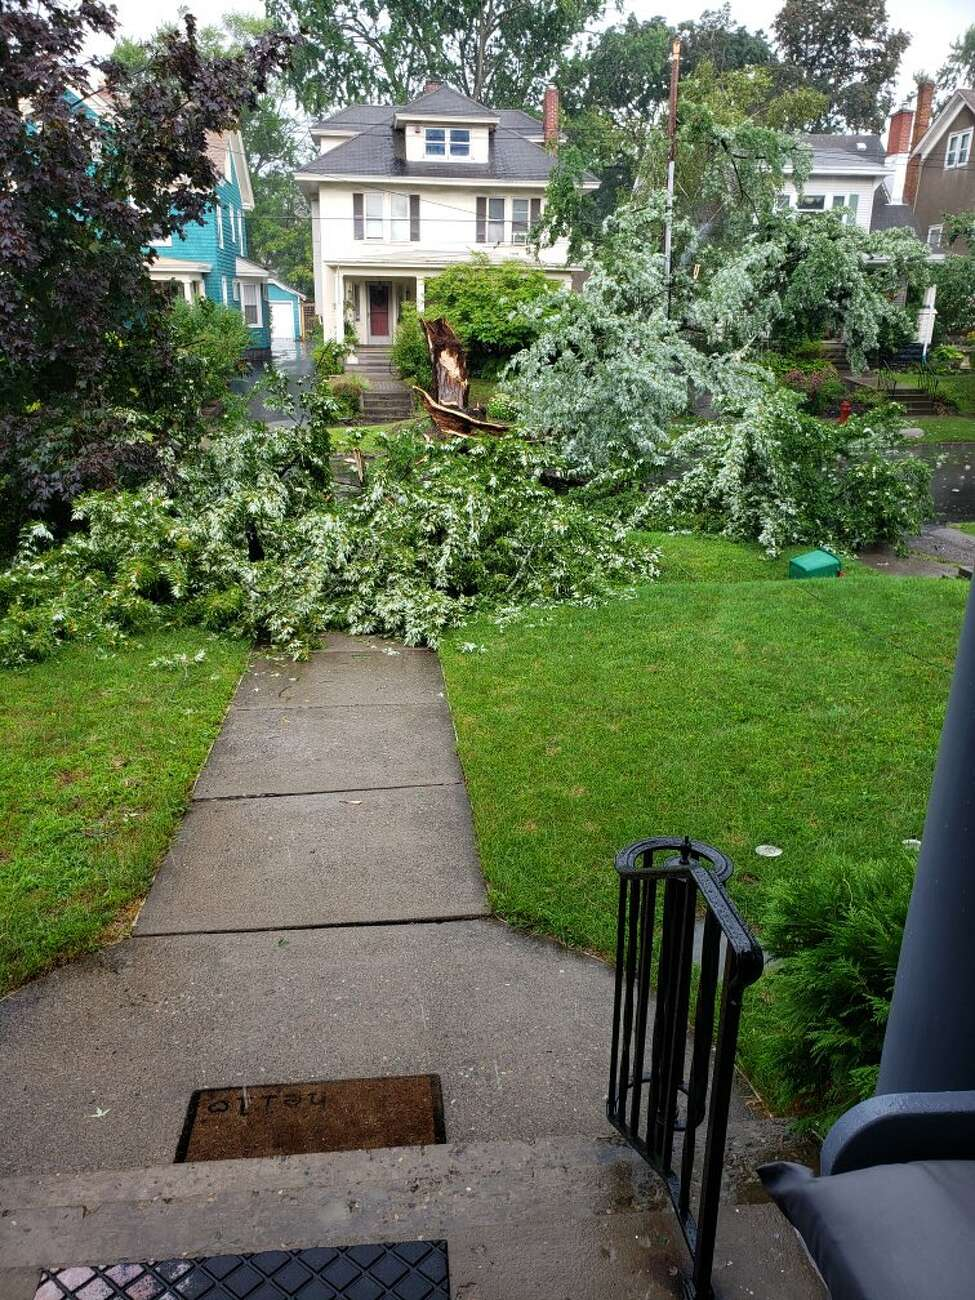 Storm damage along Ardsley Road in Schenectady on Aug. 17, 2019.